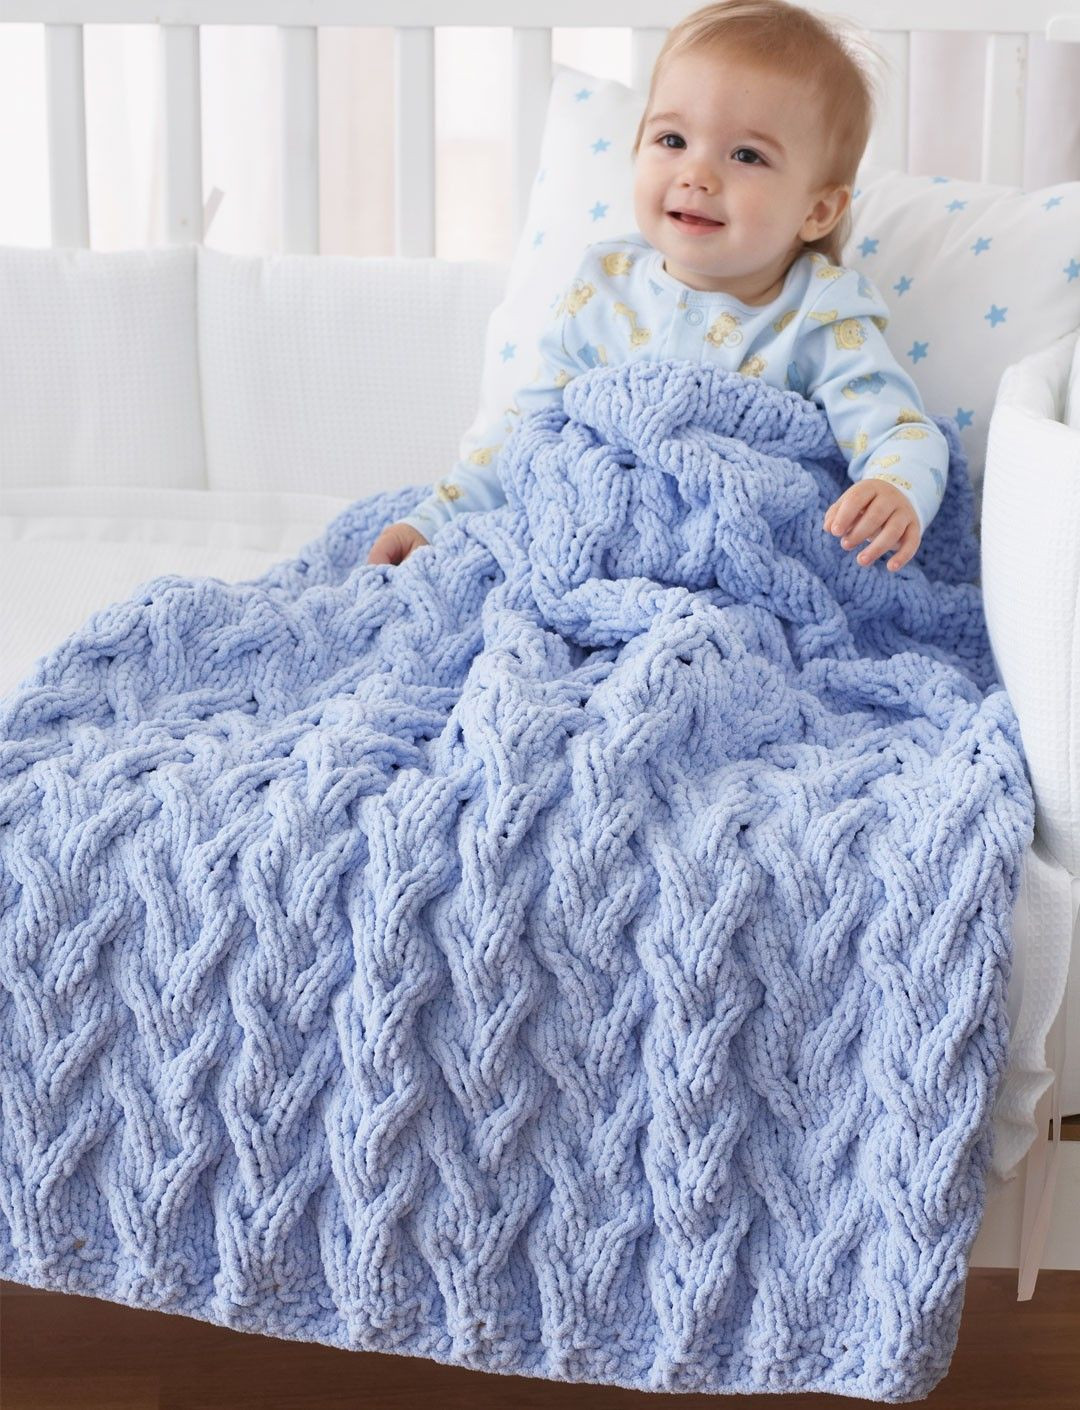 Baby Afghan Knitting Patterns Unique Cable Afghan Knitting Patterns Of Superb 40 Images Baby Afghan Knitting Patterns